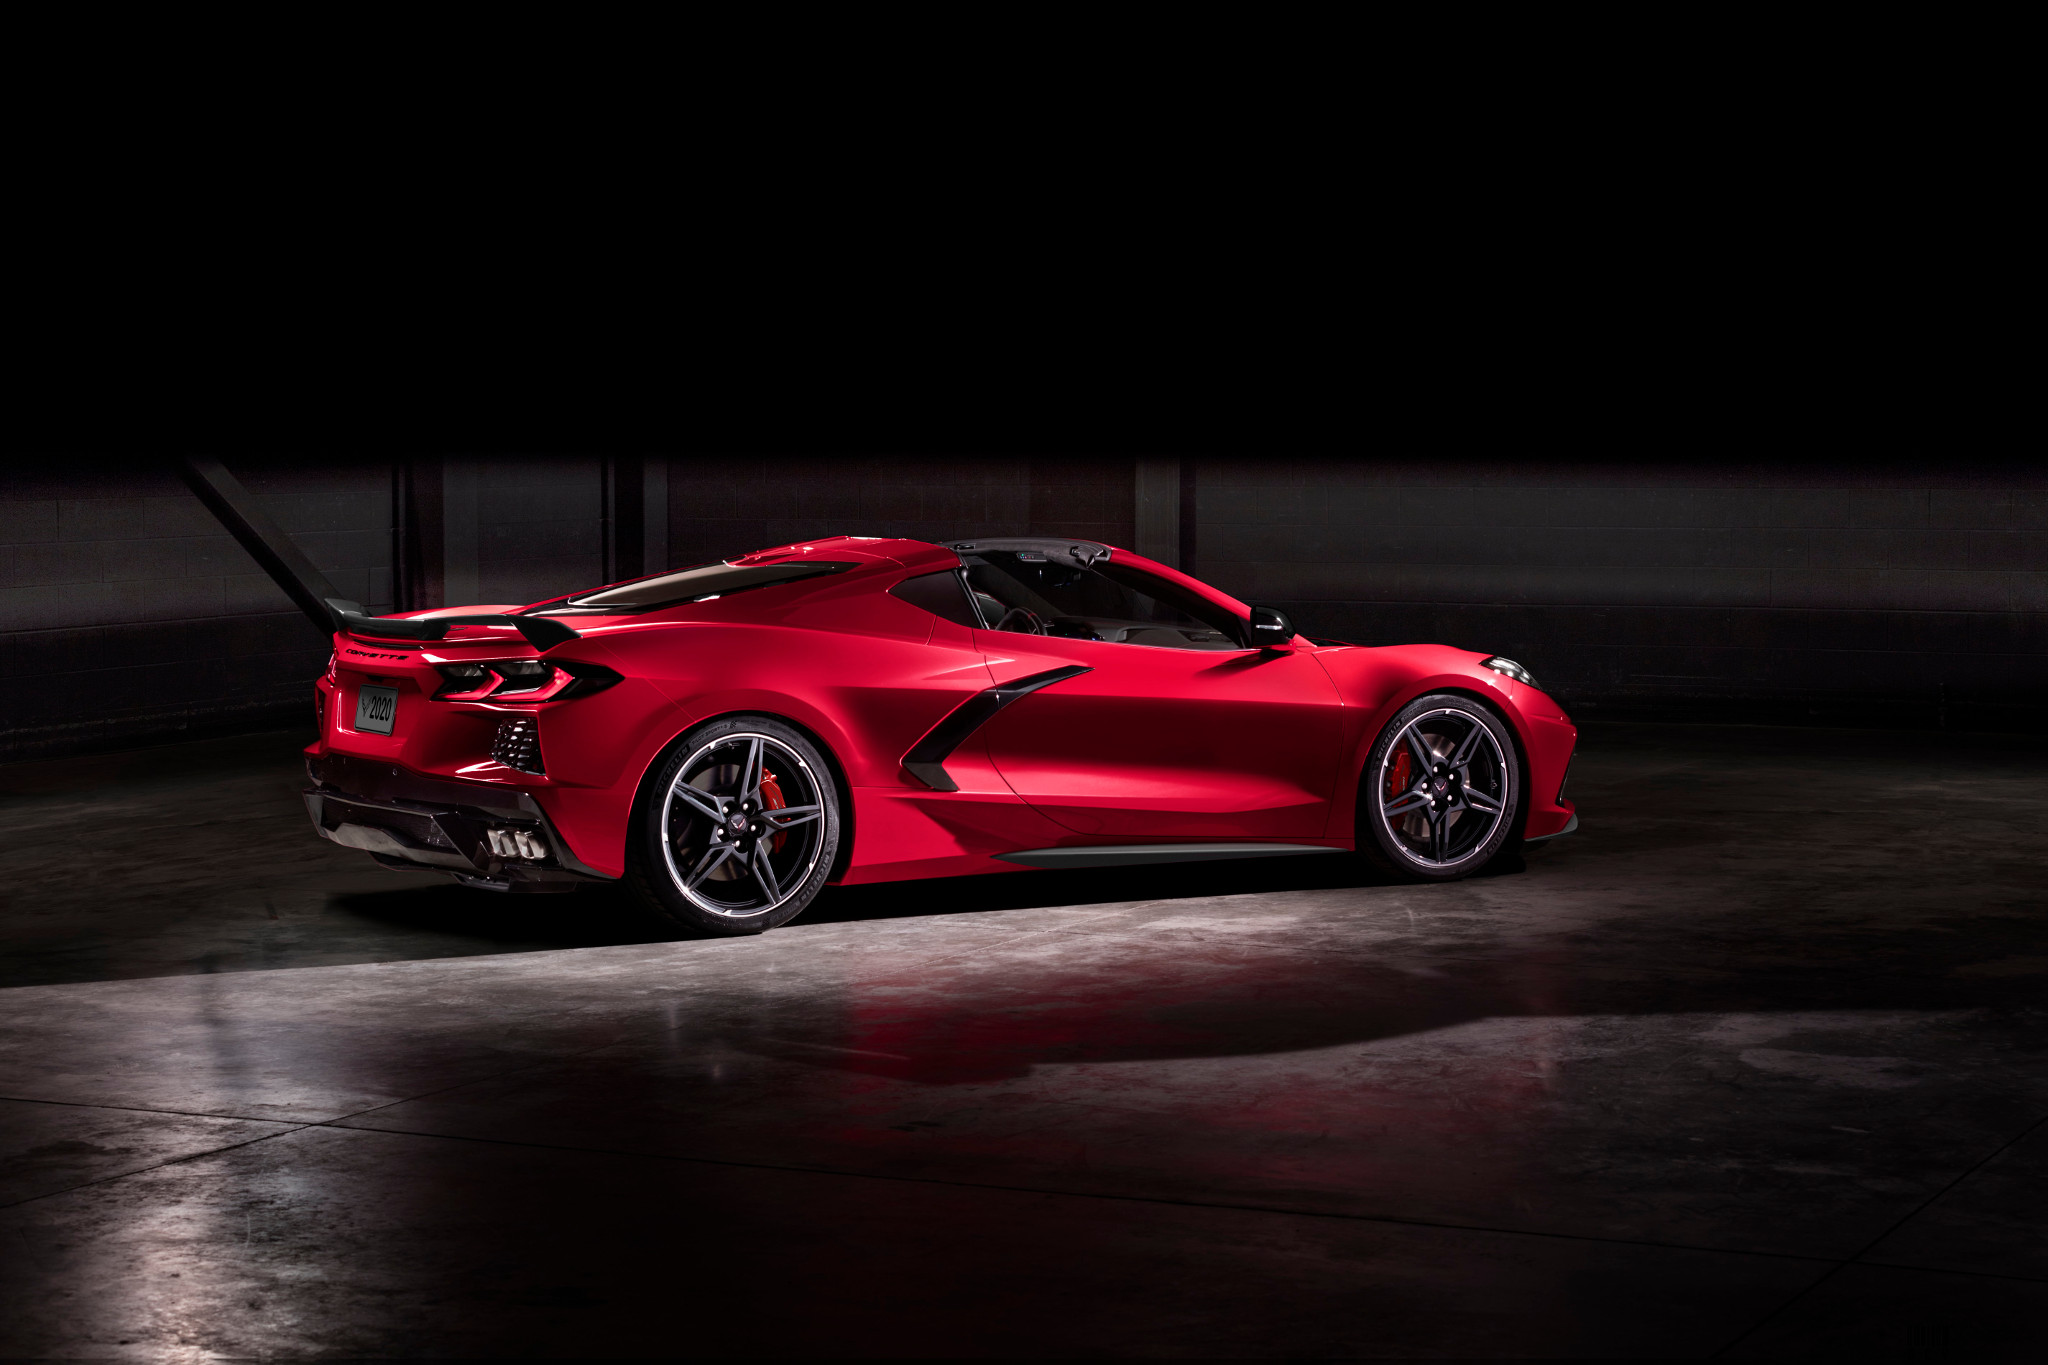 2020 Chevrolet Corvette Stingray 8 Fast Facts About The Fastest